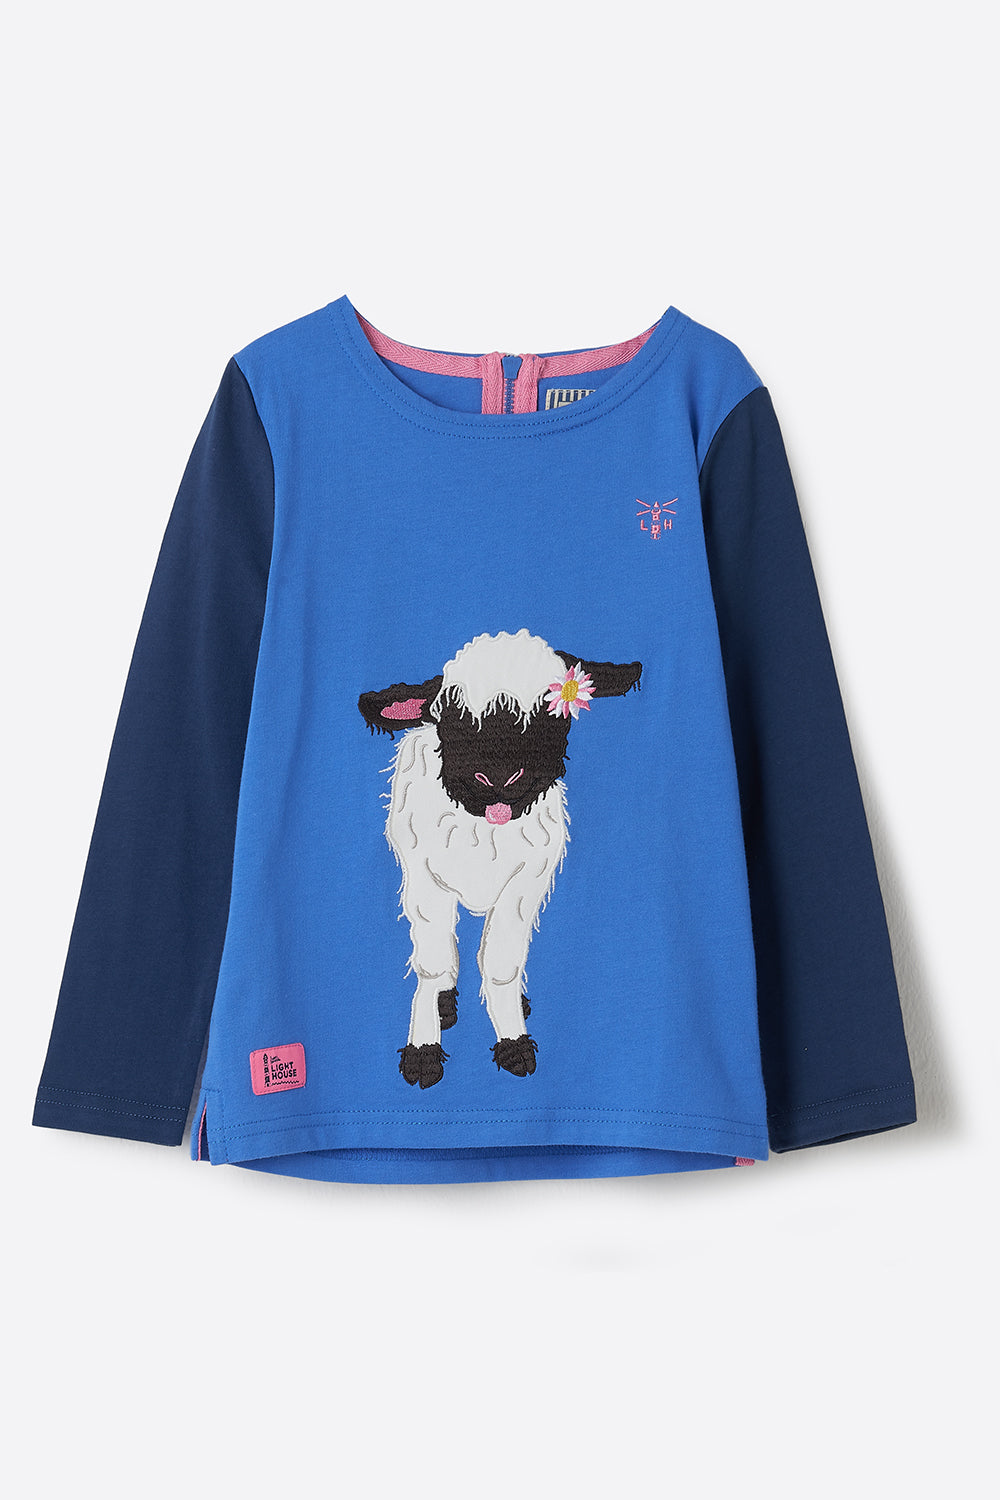 Lighthouse Causeway Girl's Long Sleeve Top - Lamb Print